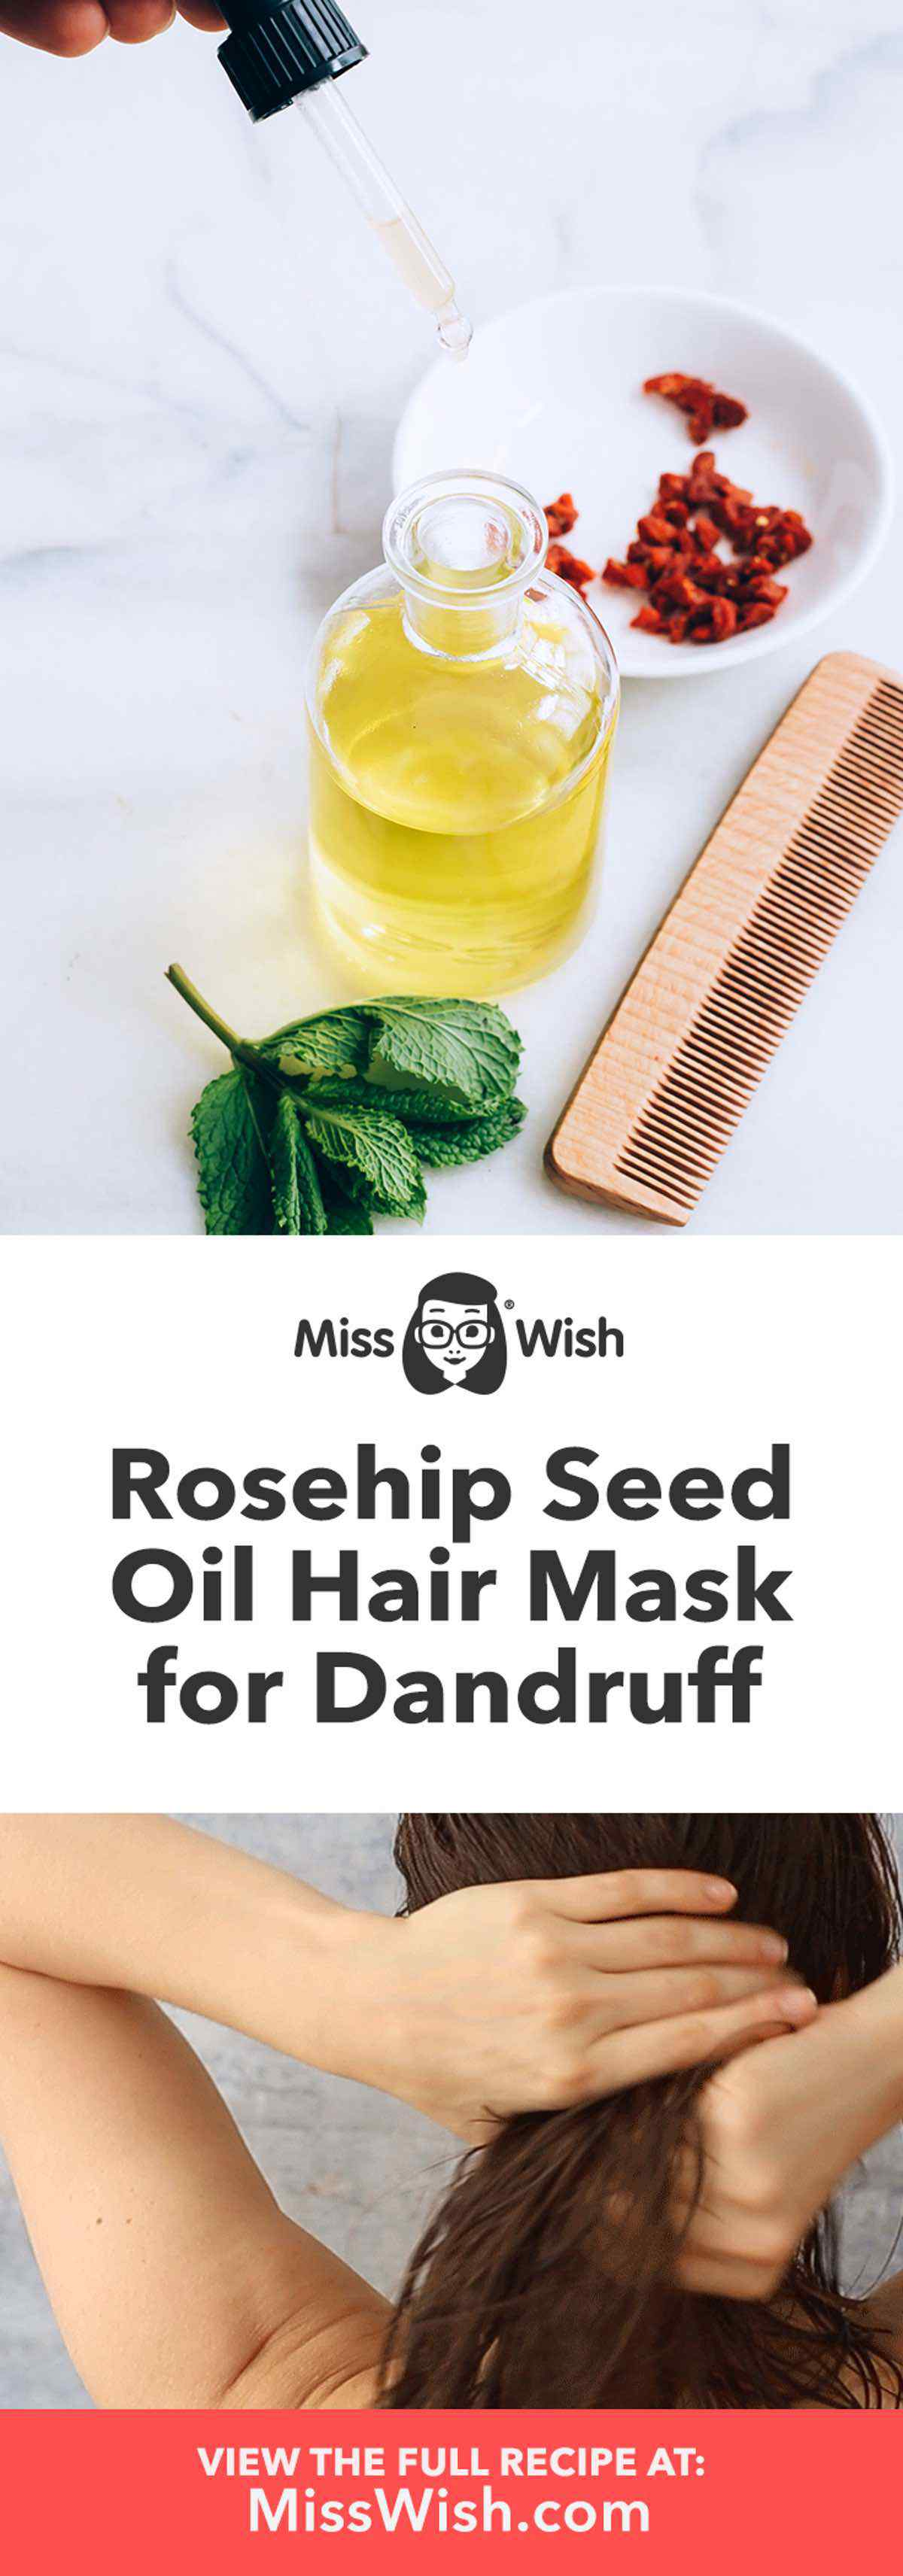 DIY Rosehip Seed Oil Hair Mask to Get Rid of Dandruff